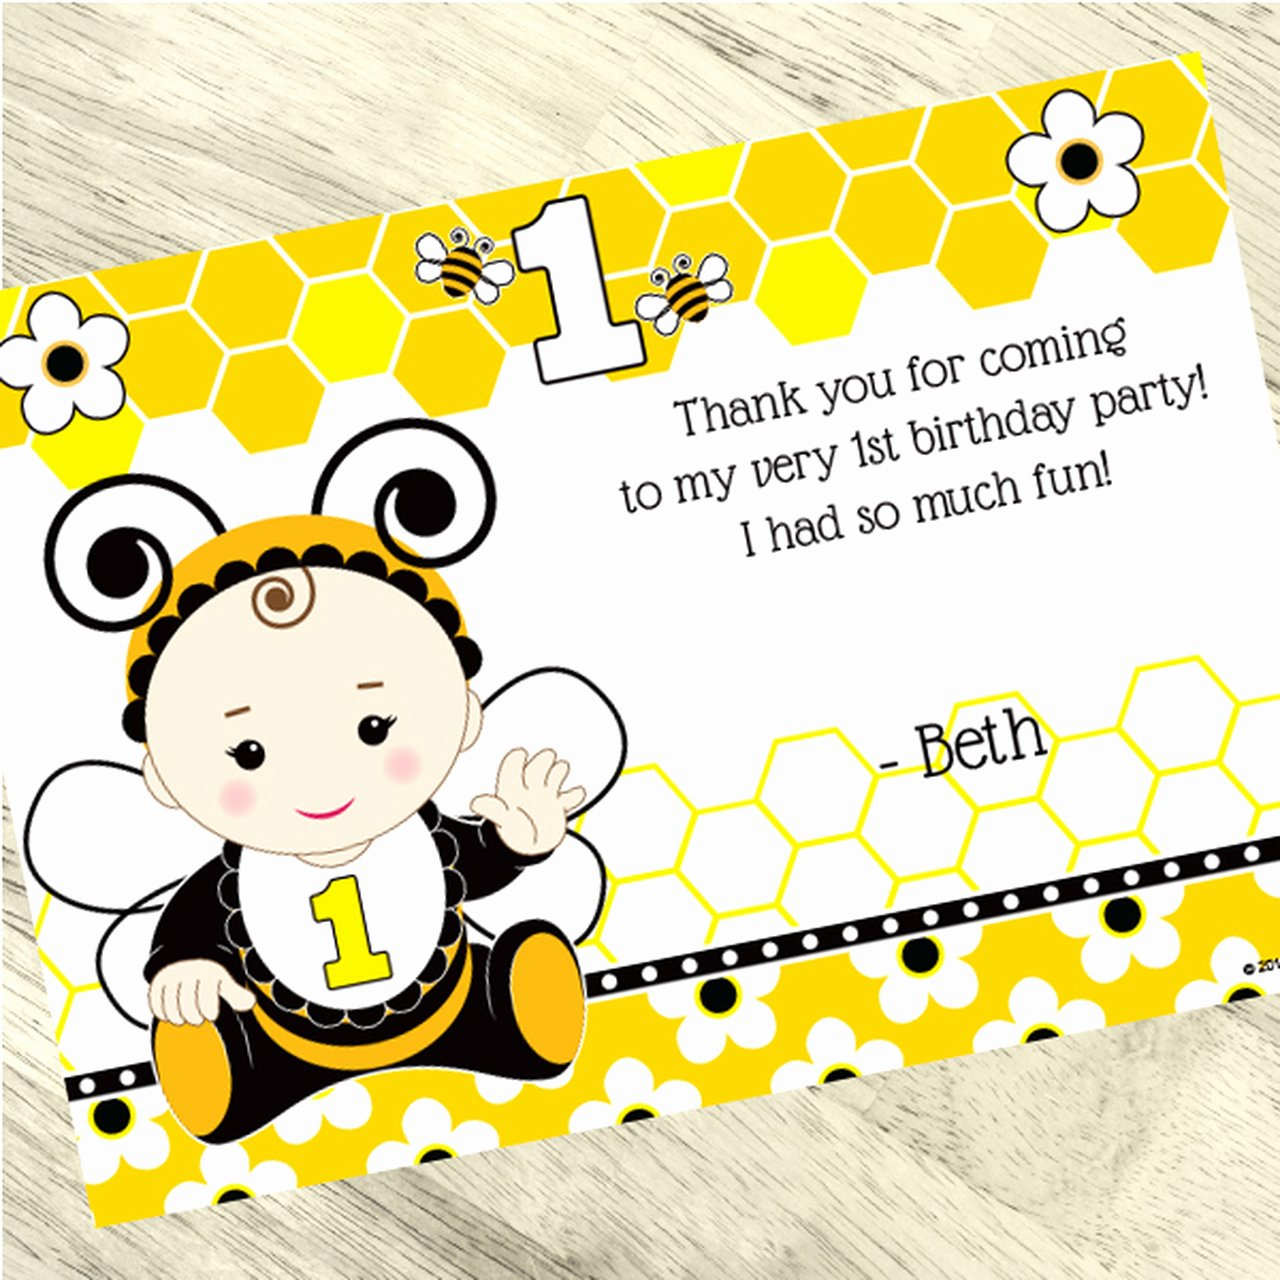 1st Birthday Thank You Cards Fresh Bumble Bee 1st Birthday Custom Thank You Cards 24ct